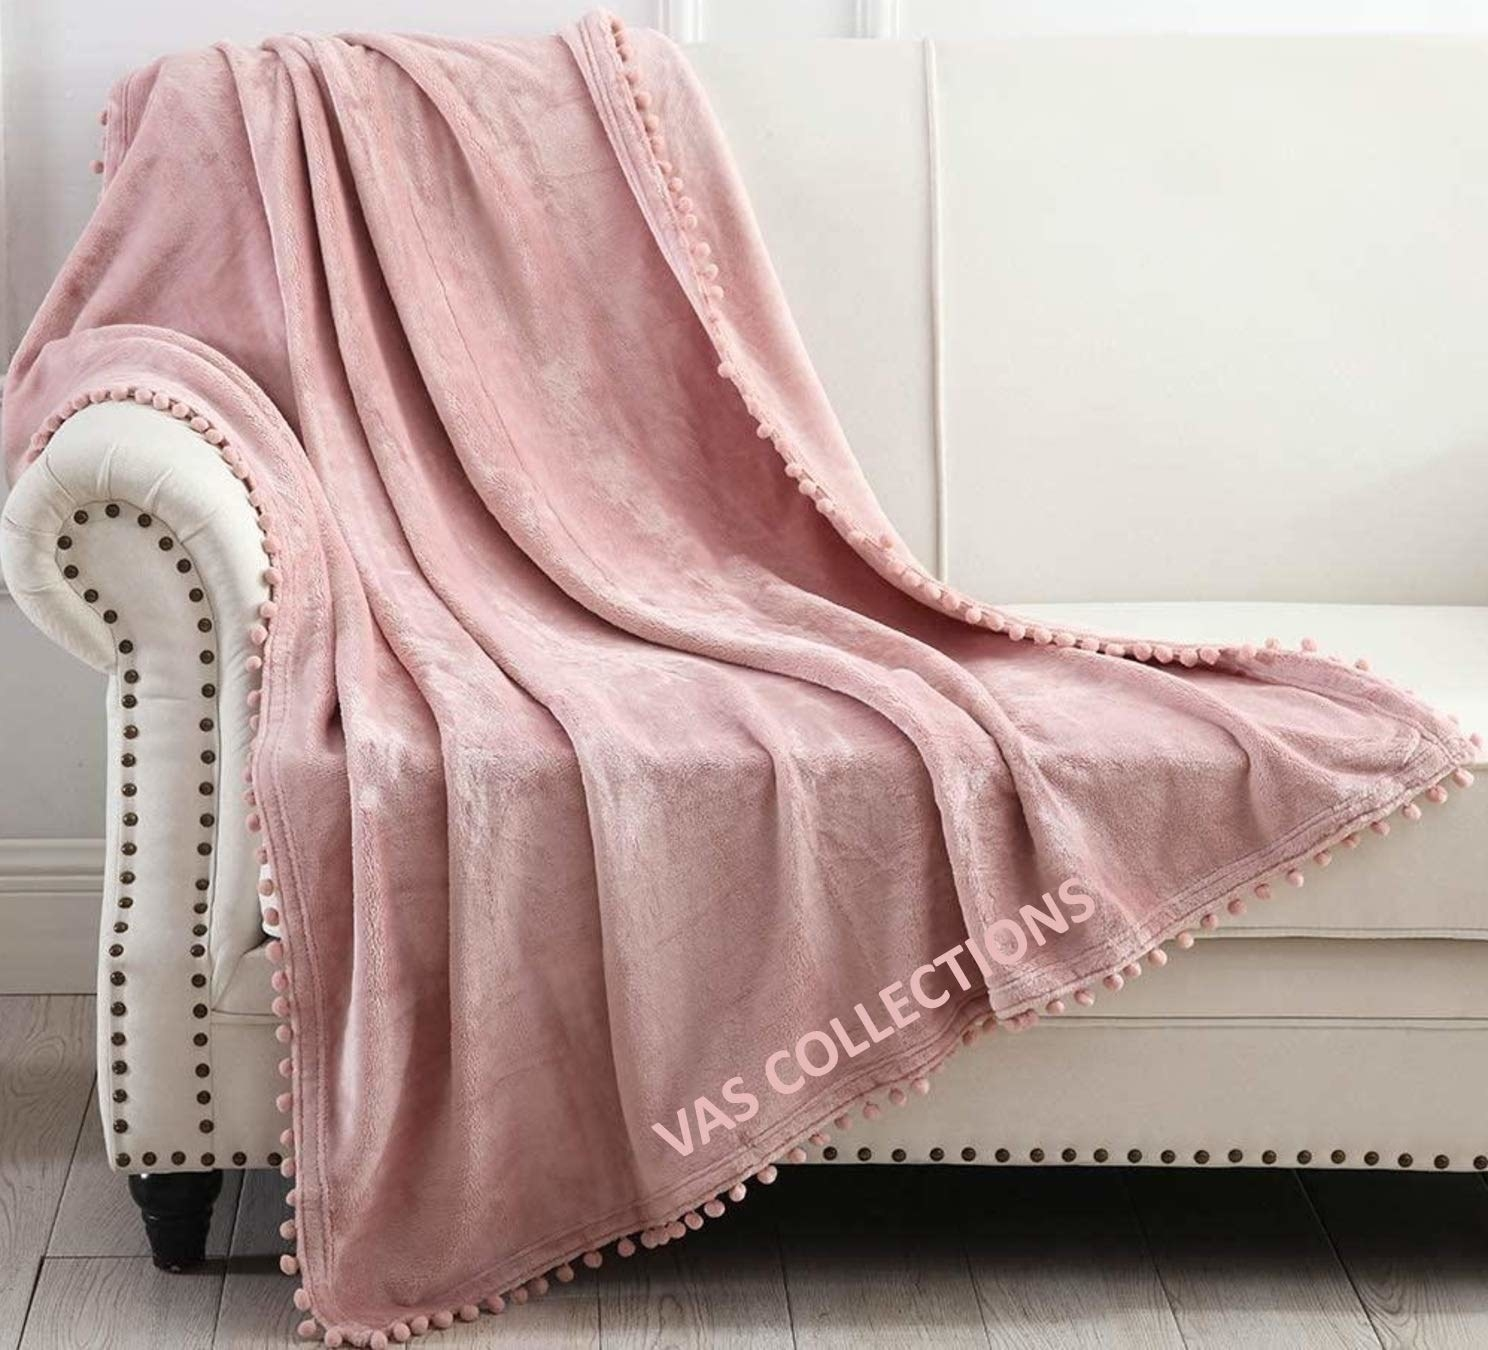 A pink throw blanket on a sofa